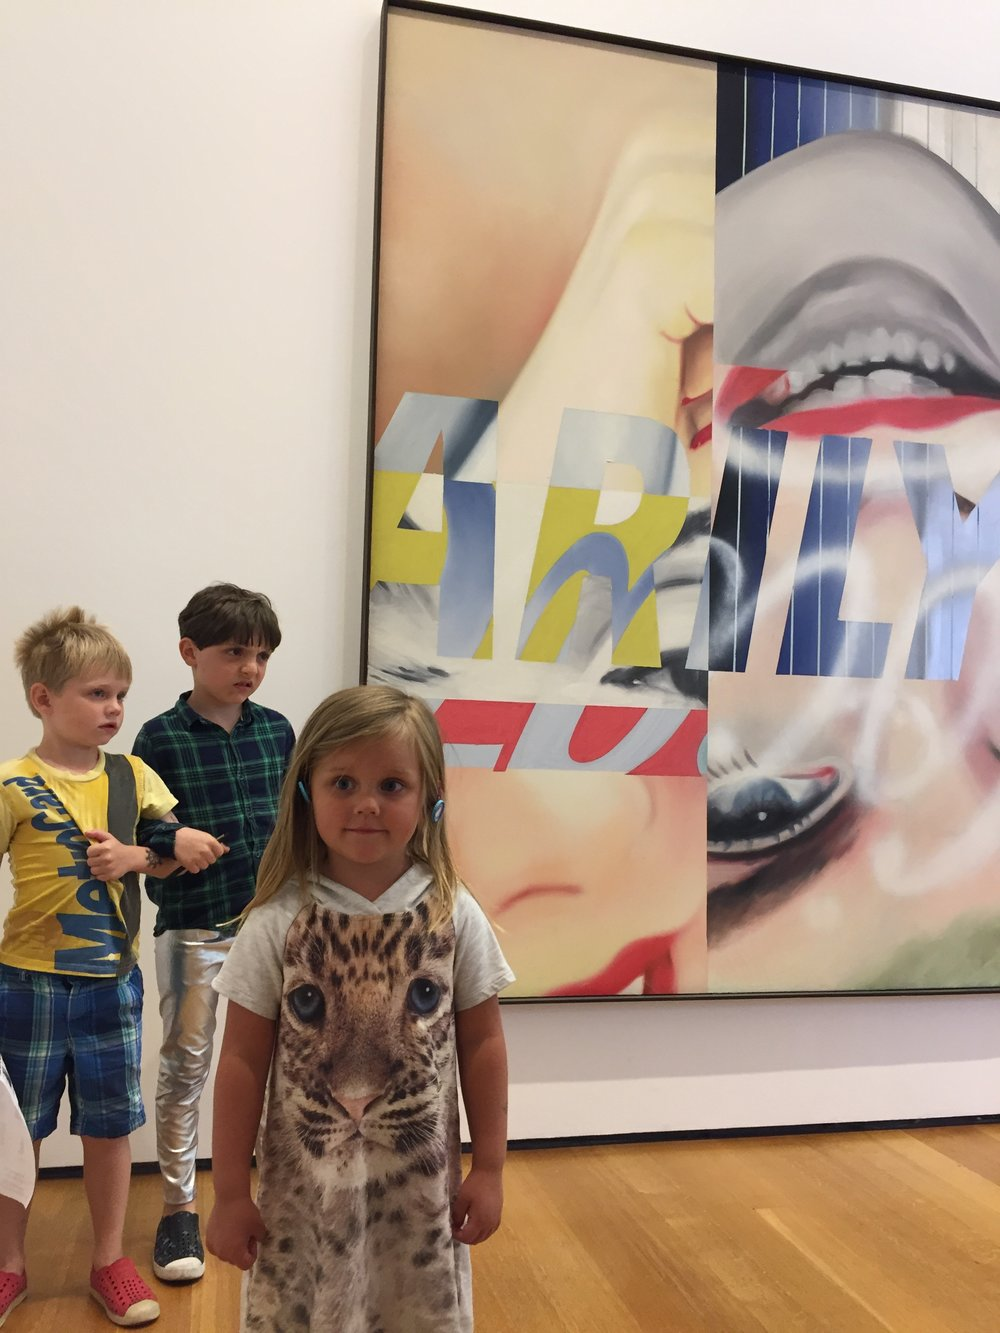 Had to get a picture of Marilyn with Rosenquist's Marilyn.